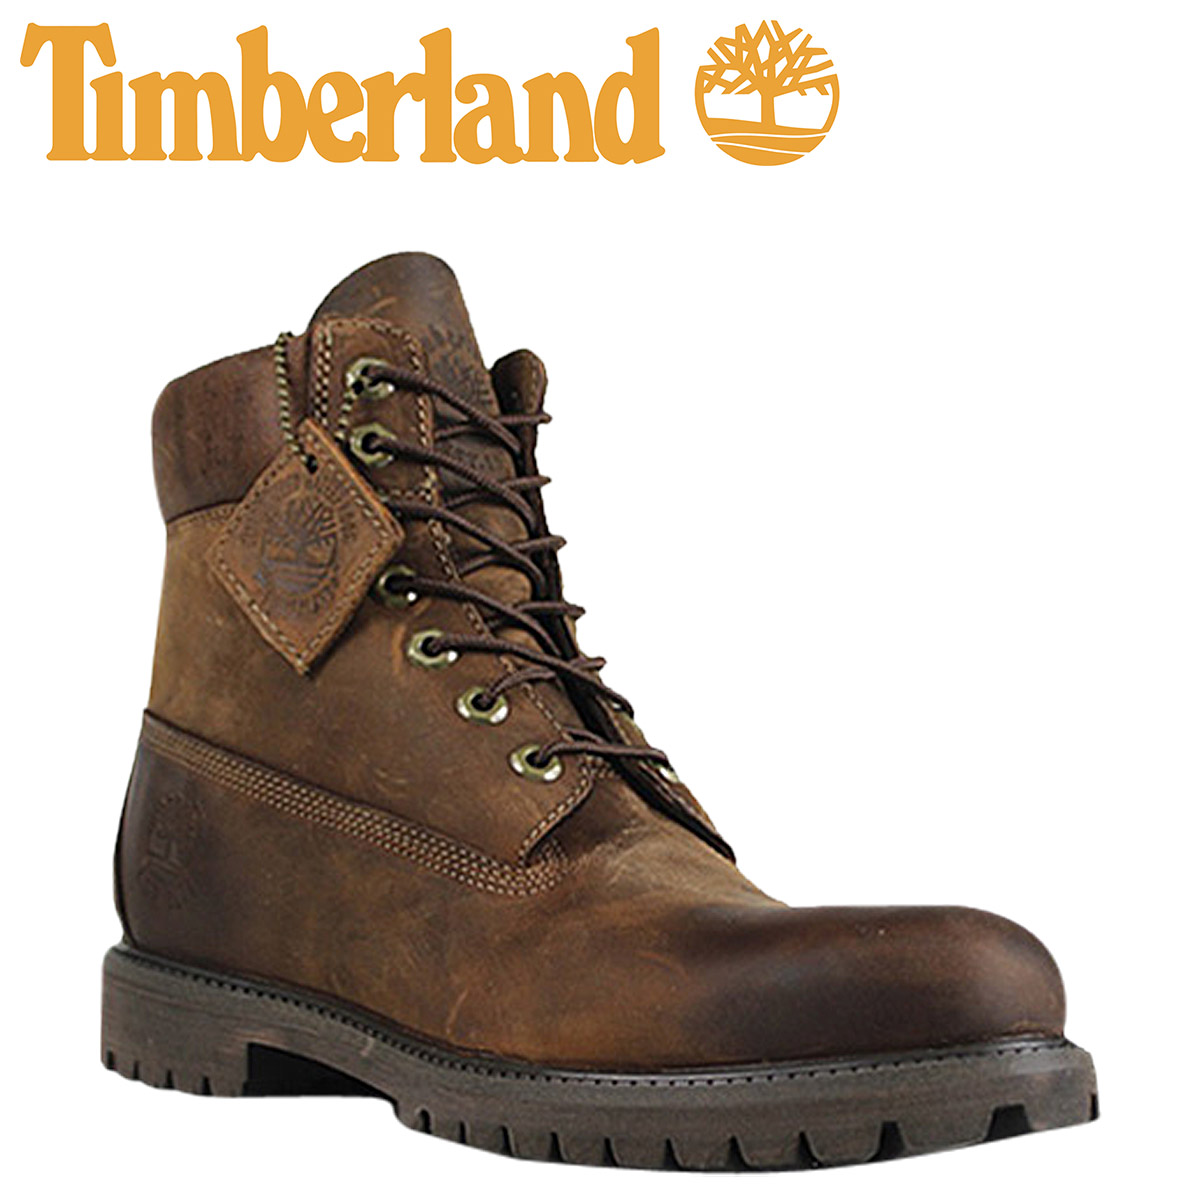 Heritage Classic 6 Inch Timberland Stiefel